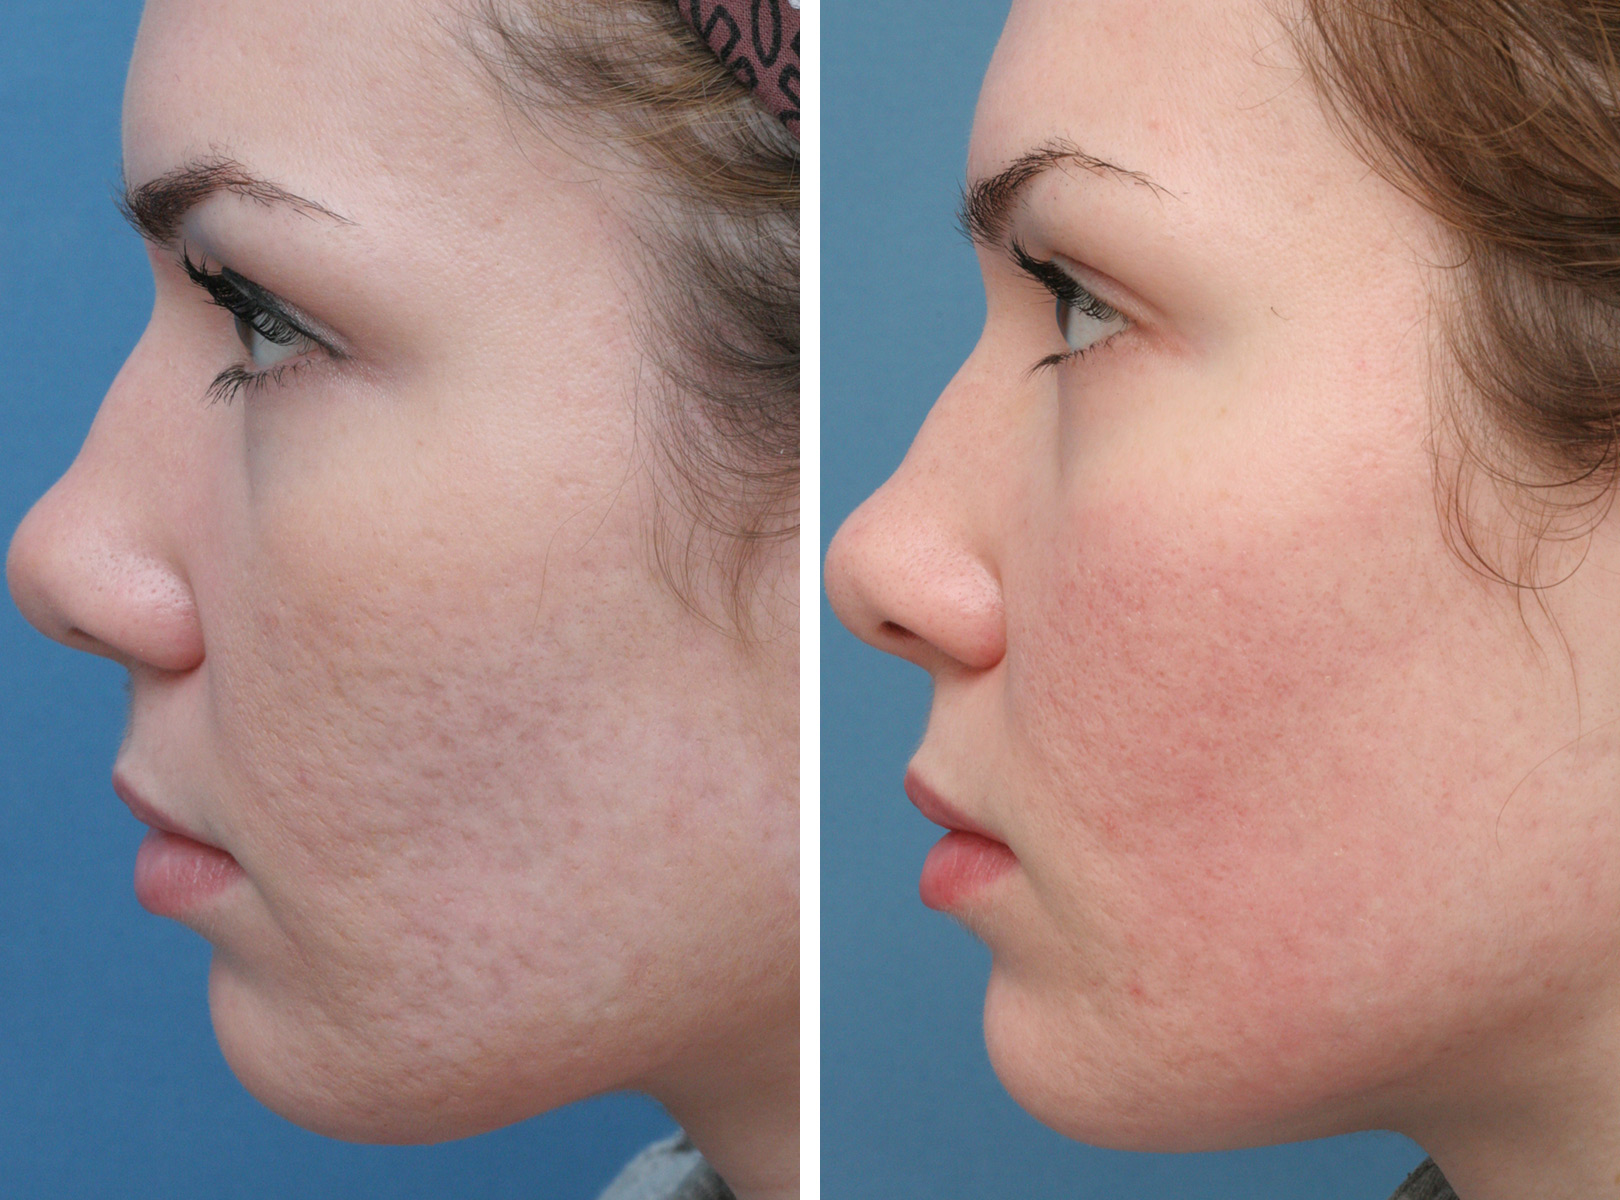 Best Acne Scar Treatements Revealed With Comparisons